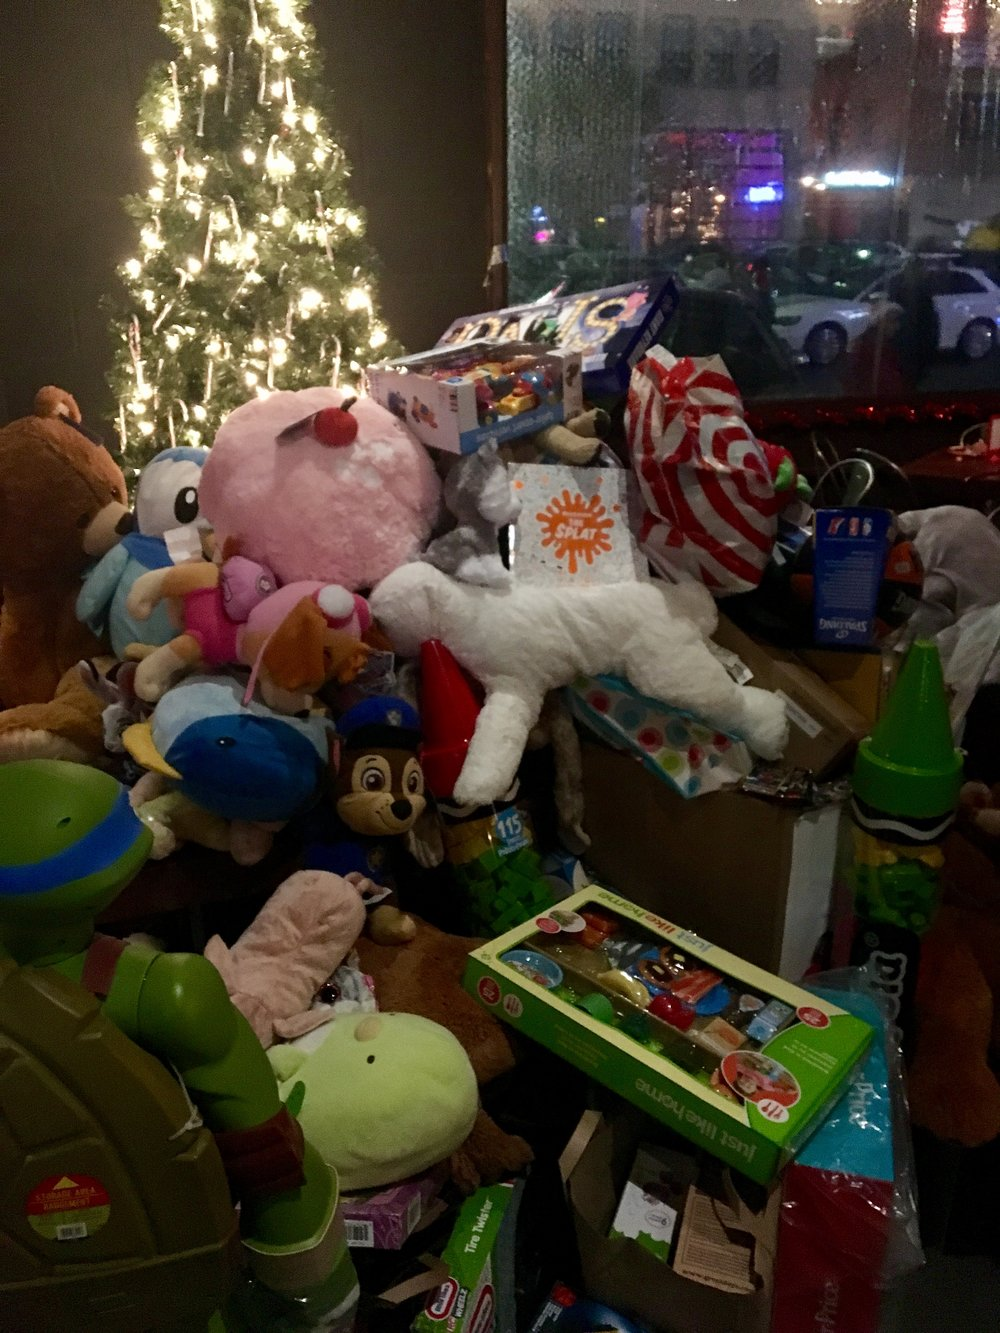 LOOK AT ALL THE TOYS THEY COLLECTED!!!